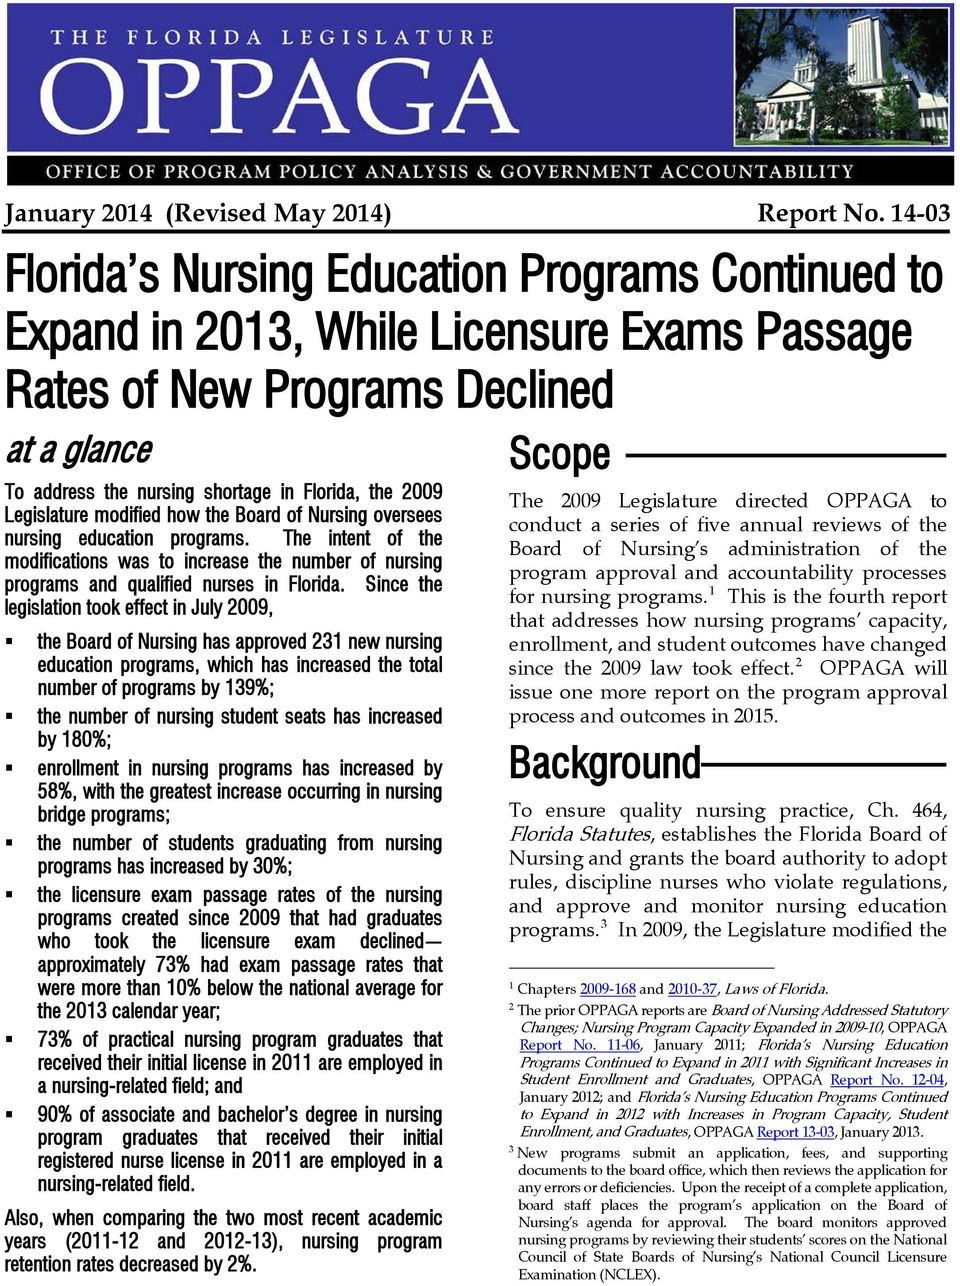 Legislature modified how the Board of Nursing oversees nursing education programs. The intent of the modifications was to increase the number of nursing programs and qualified nurses in Florida.